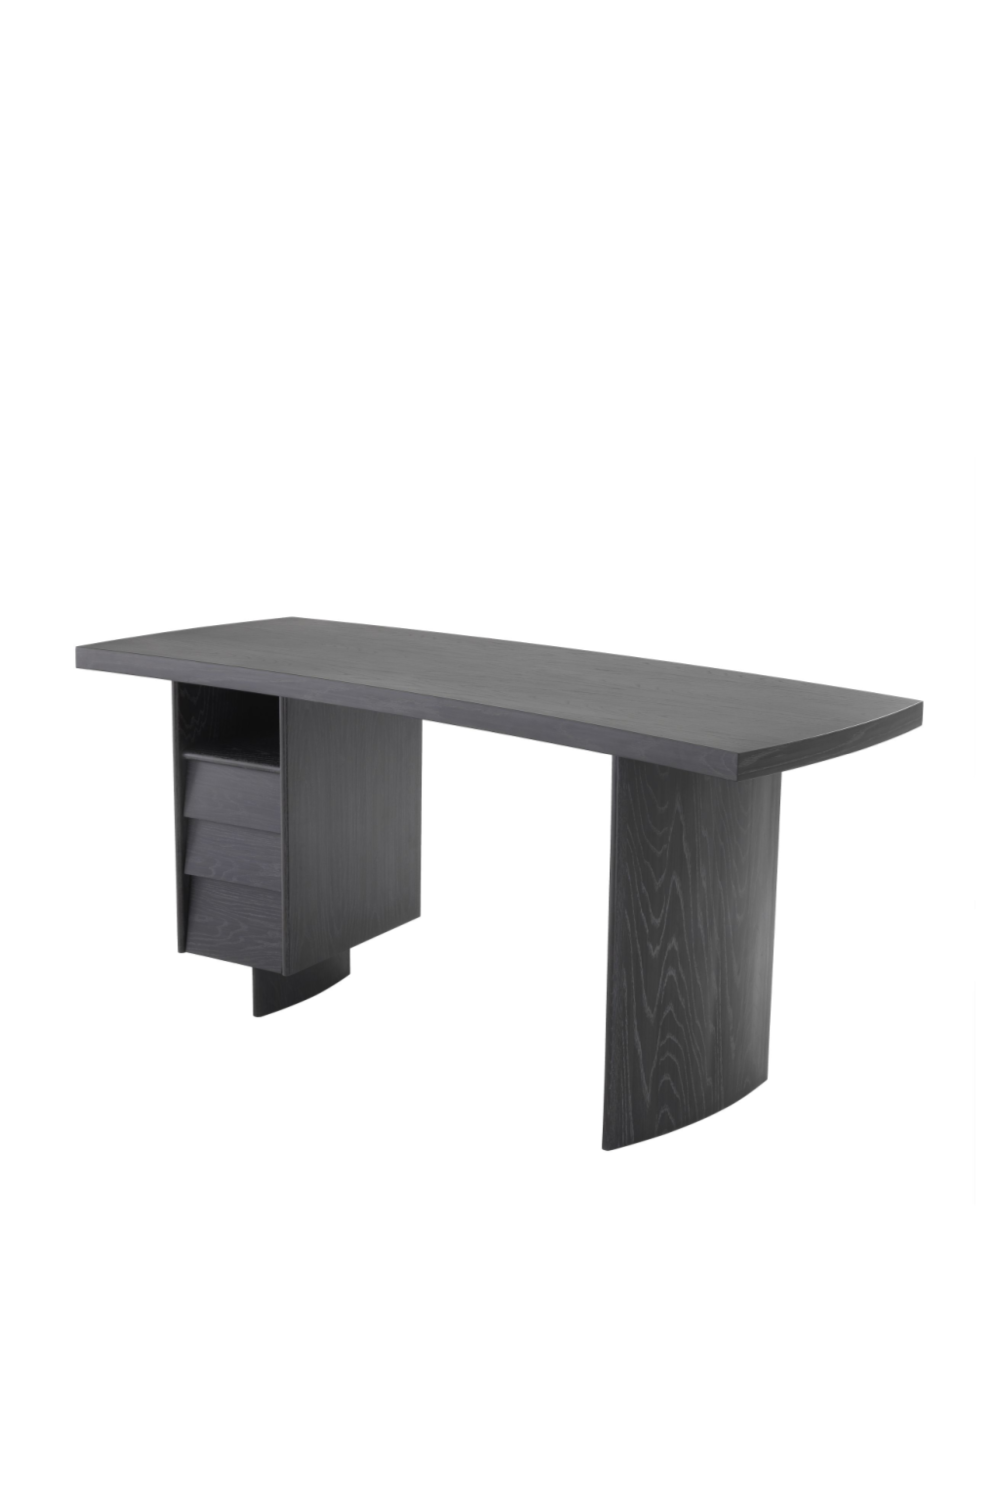 Charcoal Gray Oak Desk | Eichholtz Virage | #1 Eichholtz Retailer